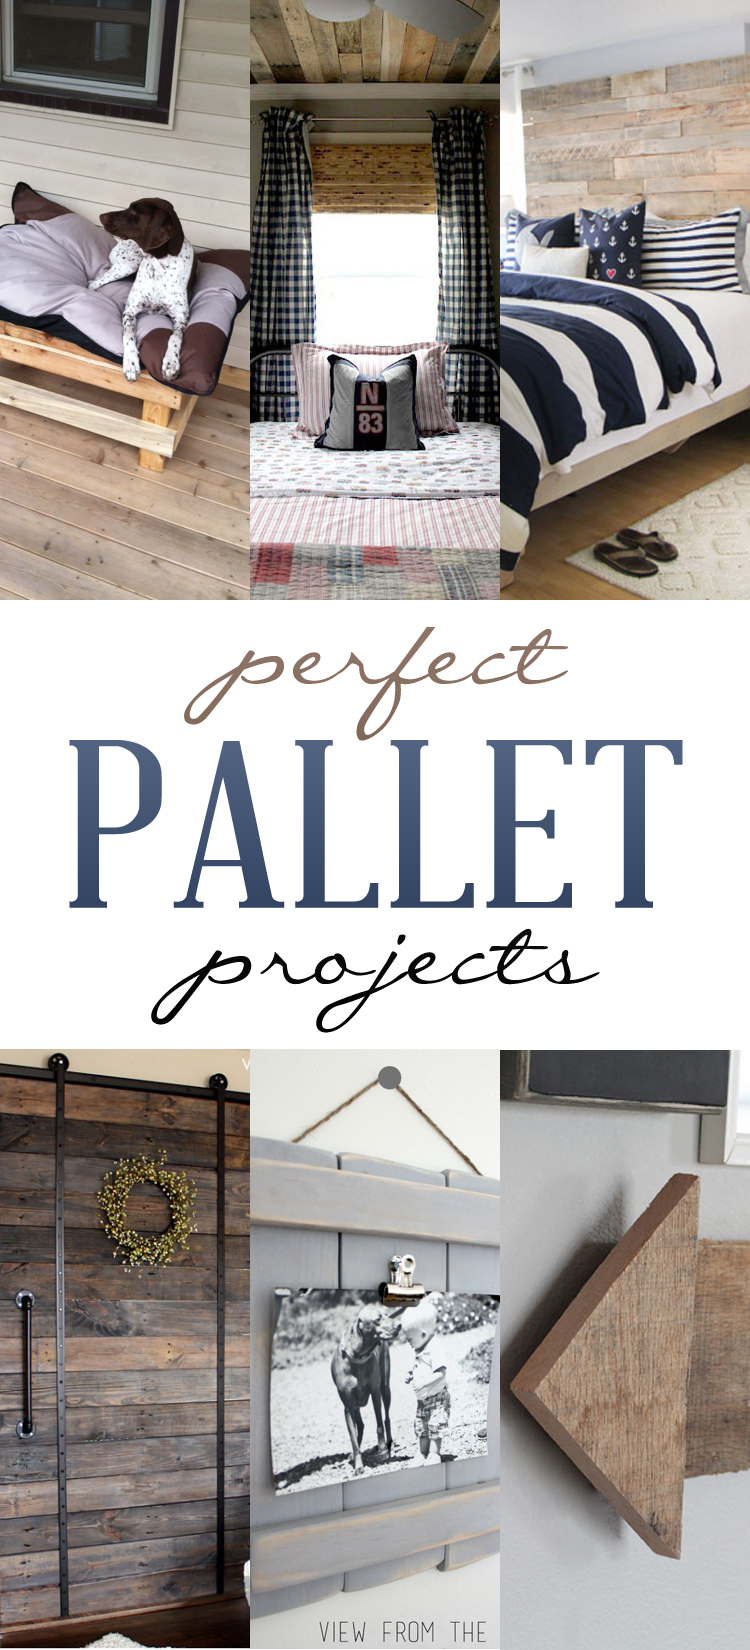 http://thecottagemarket.com/wp-content/uploads/2015/09/pallet-TOWEEER-01.png